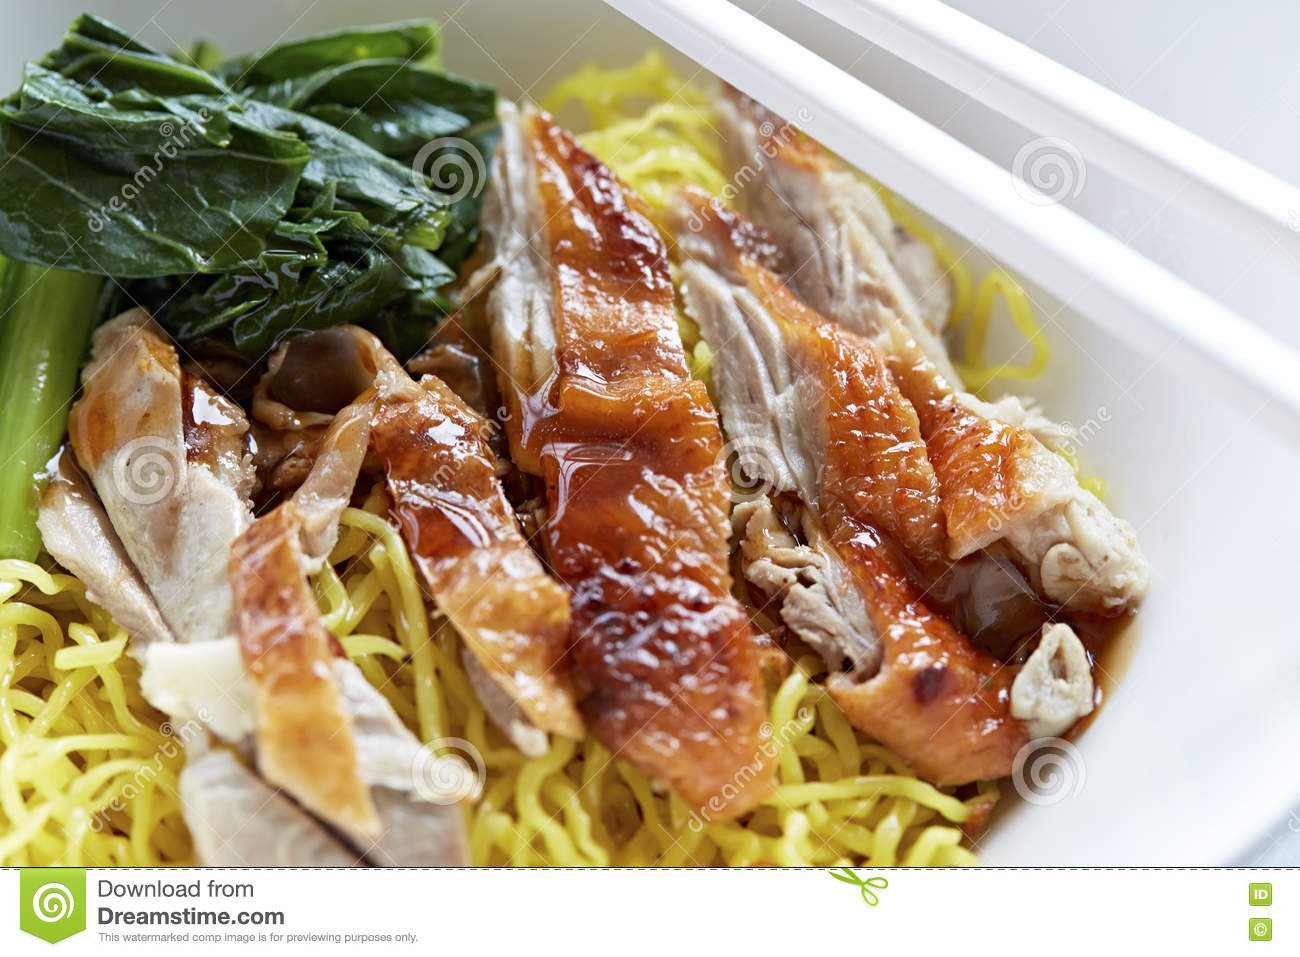 roasted-duck-yellow-jade-noodles-table-7